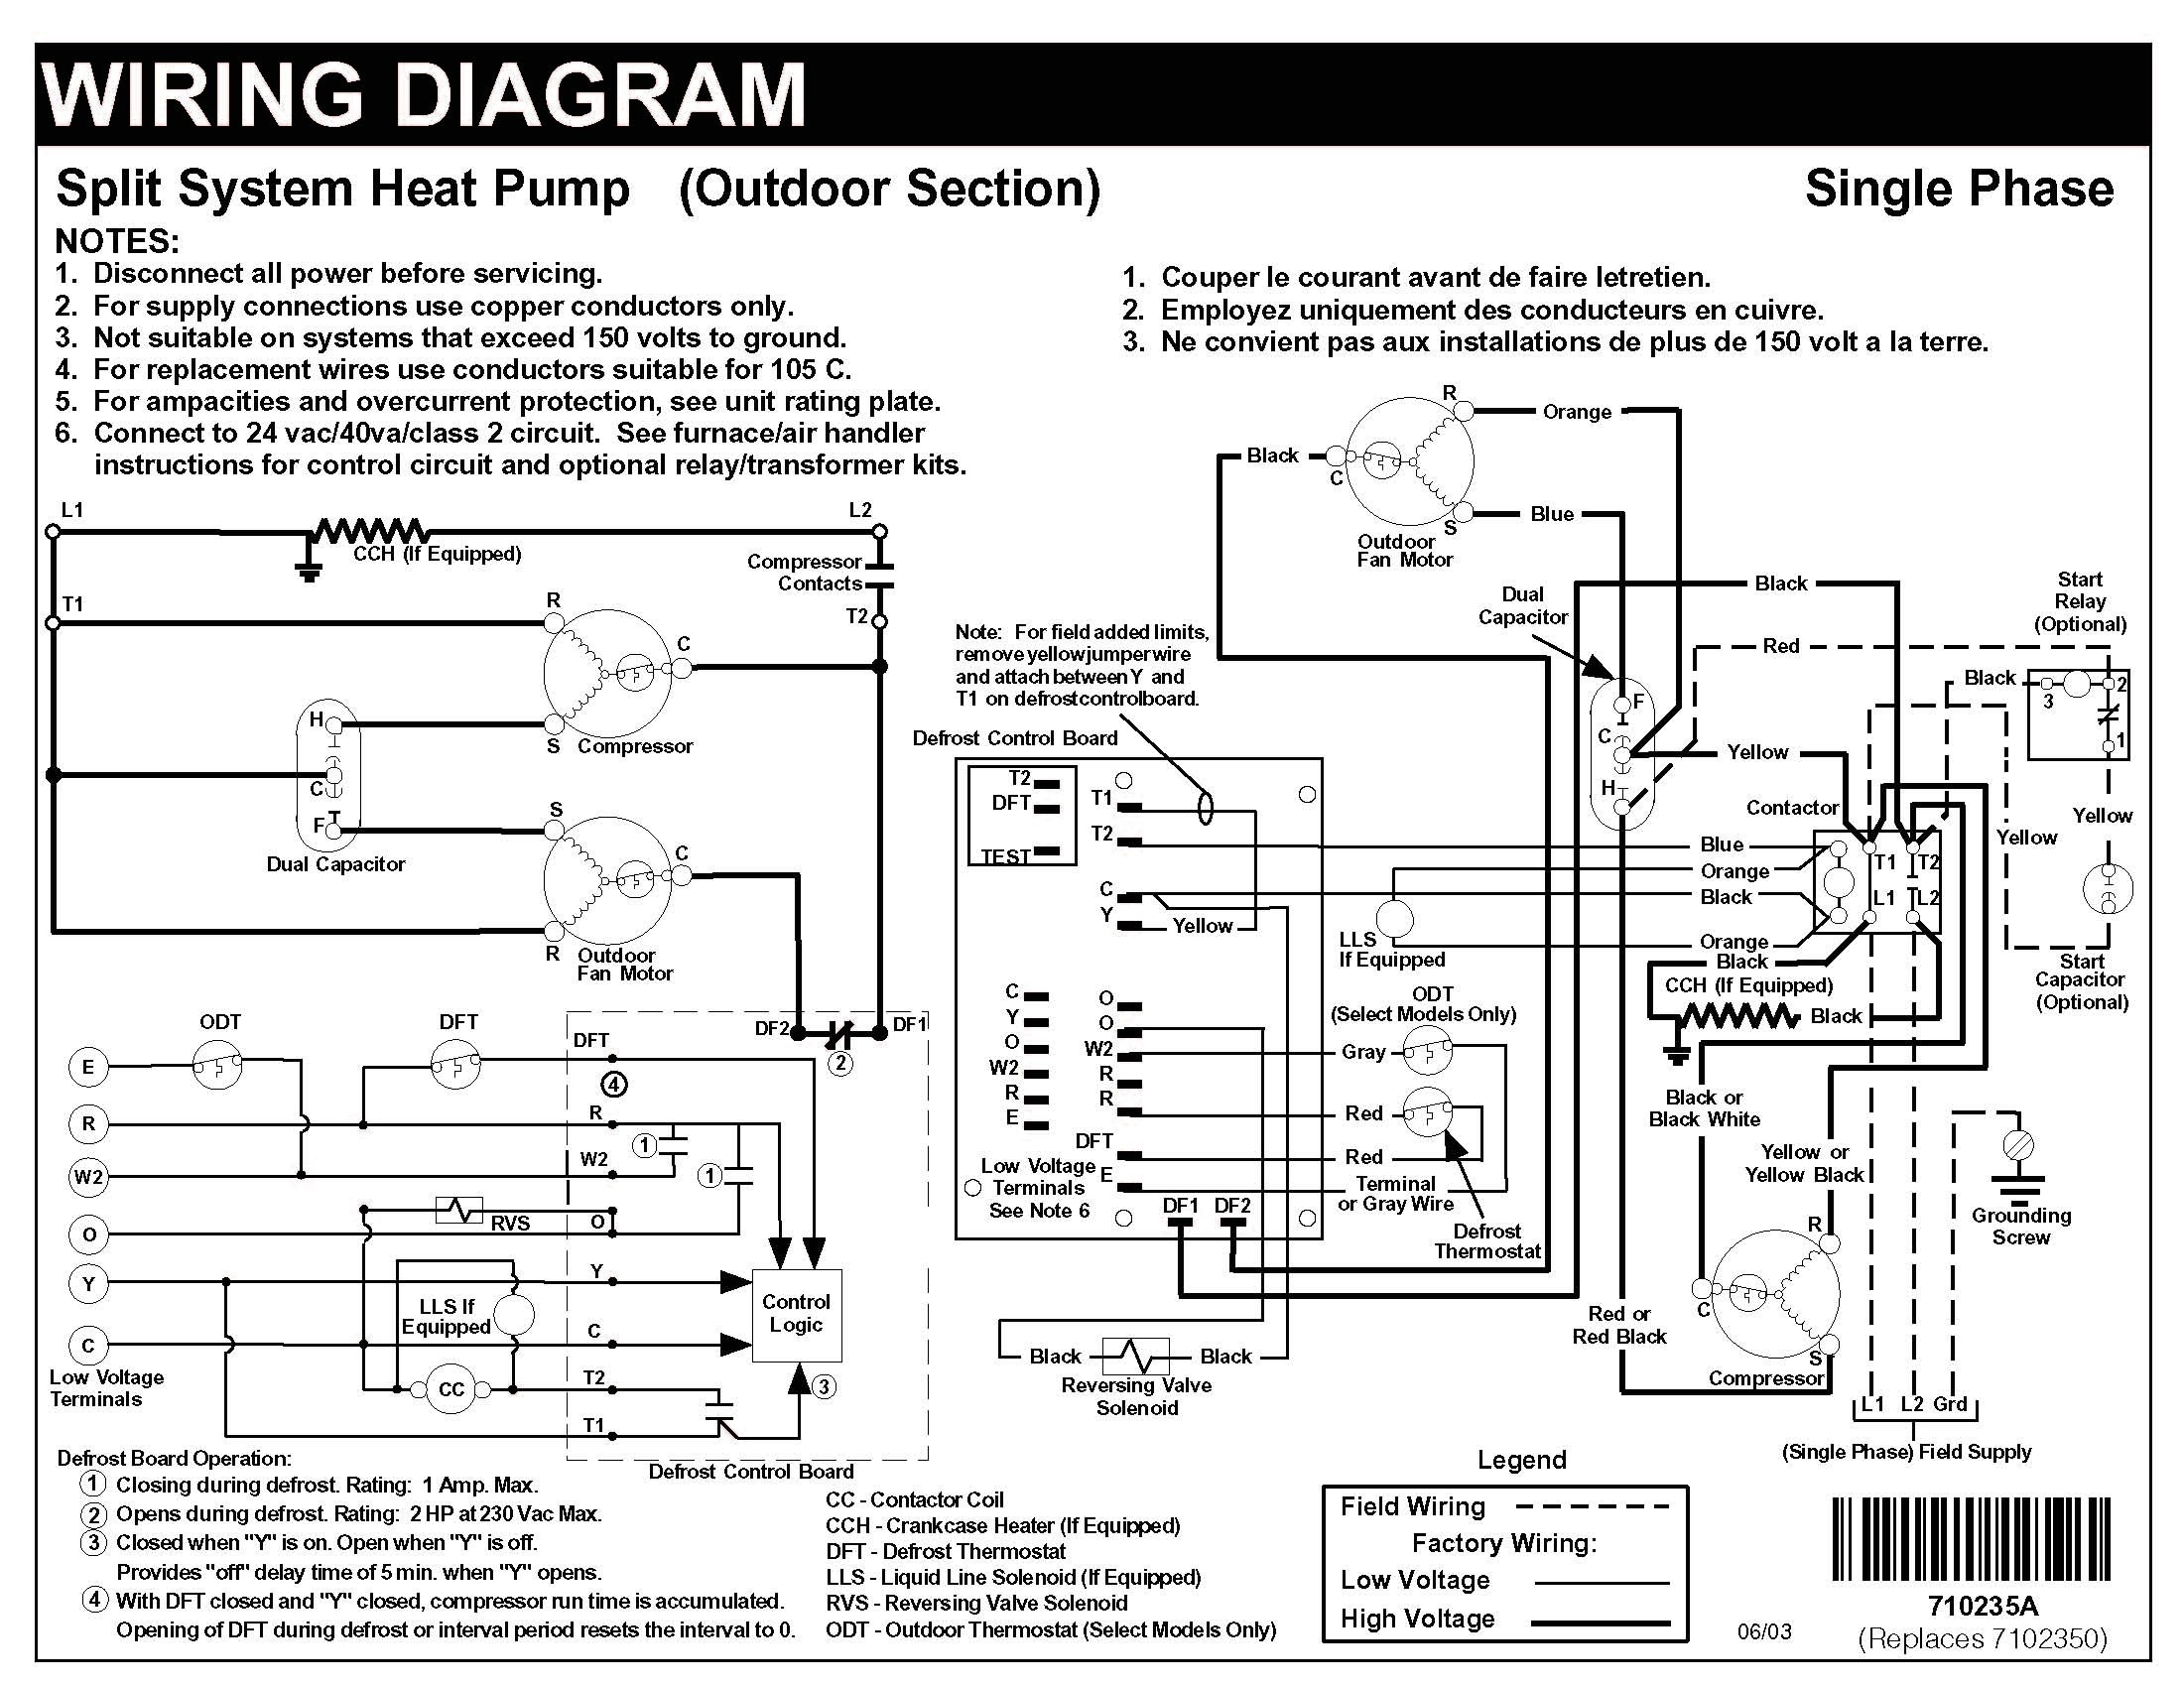 central air conditioner wiring diagram - wiring diagram for central ac unit  new famous icp heat